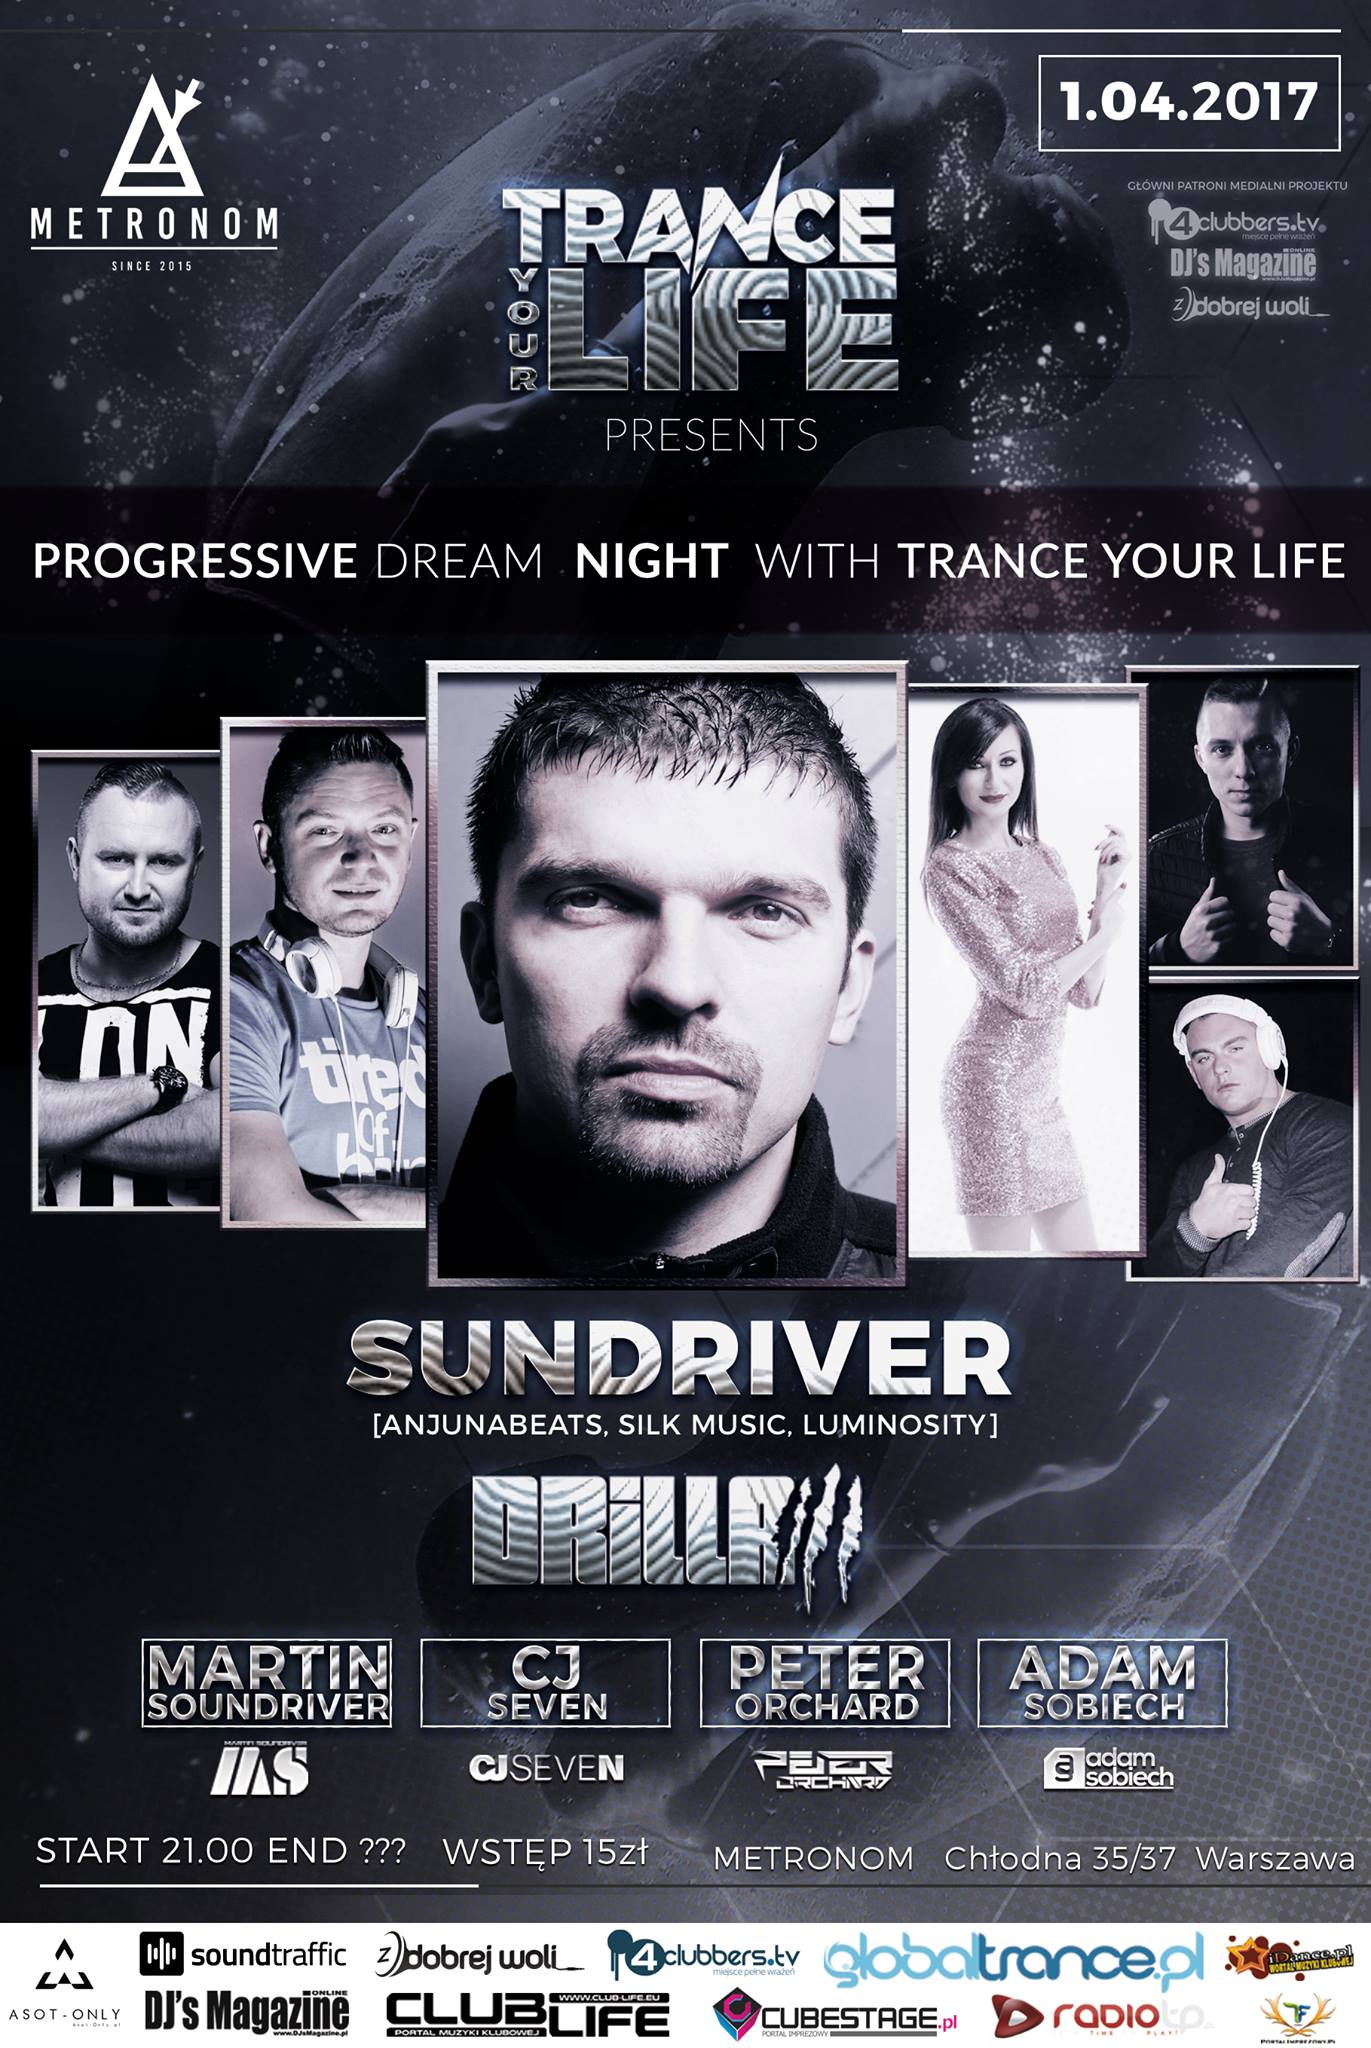 progressive dream night trance your life metronom